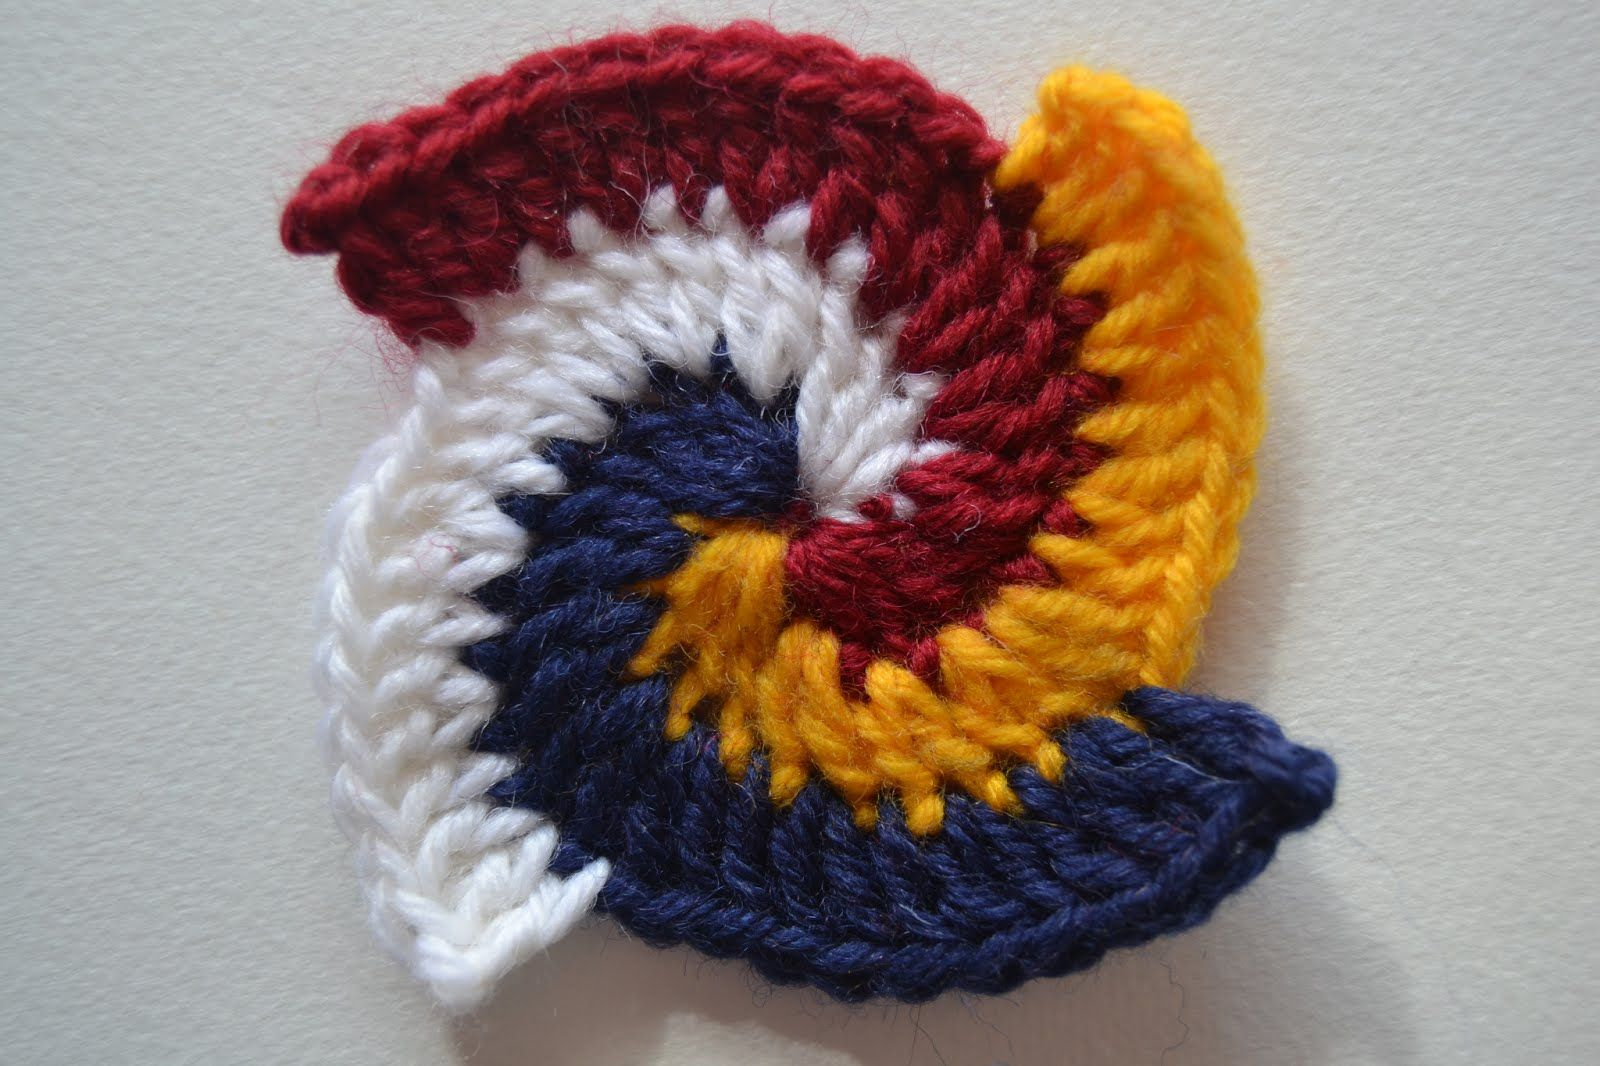 In my previous tutorials about Freeform Crochet I showed you how to make a spiral and how to make a spiral with two colors. Here's a few more ideas for making spirals.